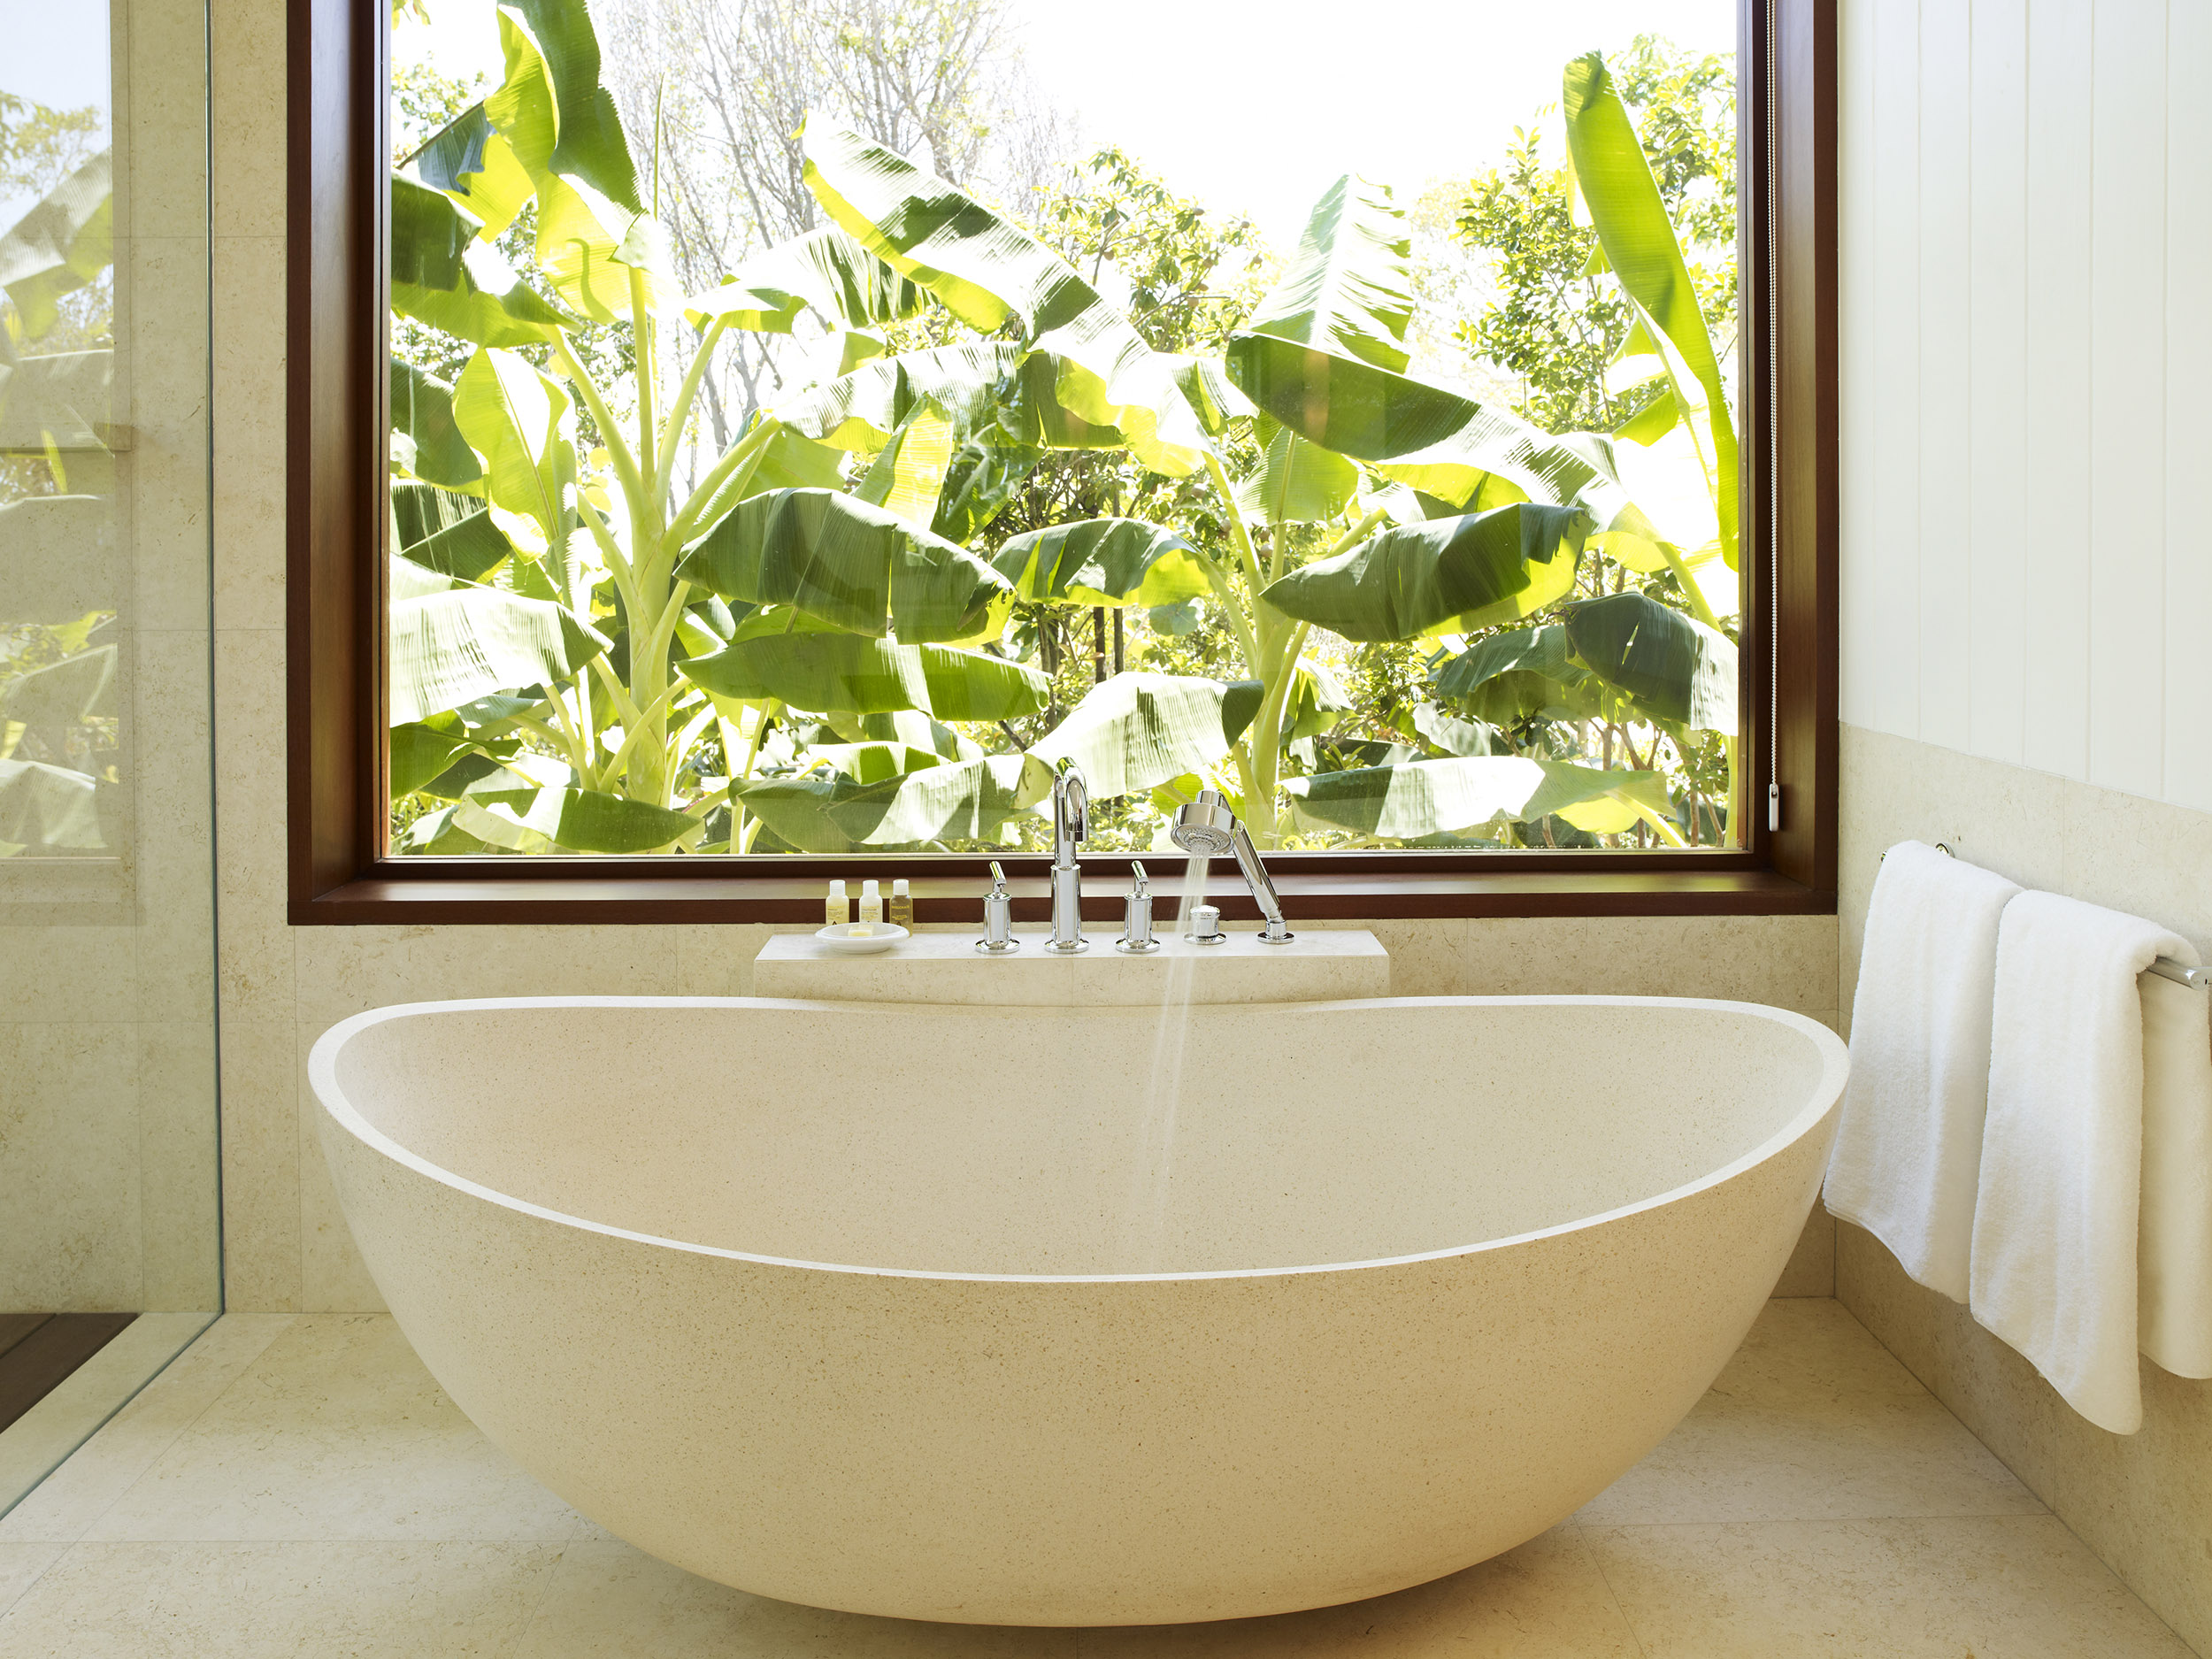 Tamarind - view of the bath tub